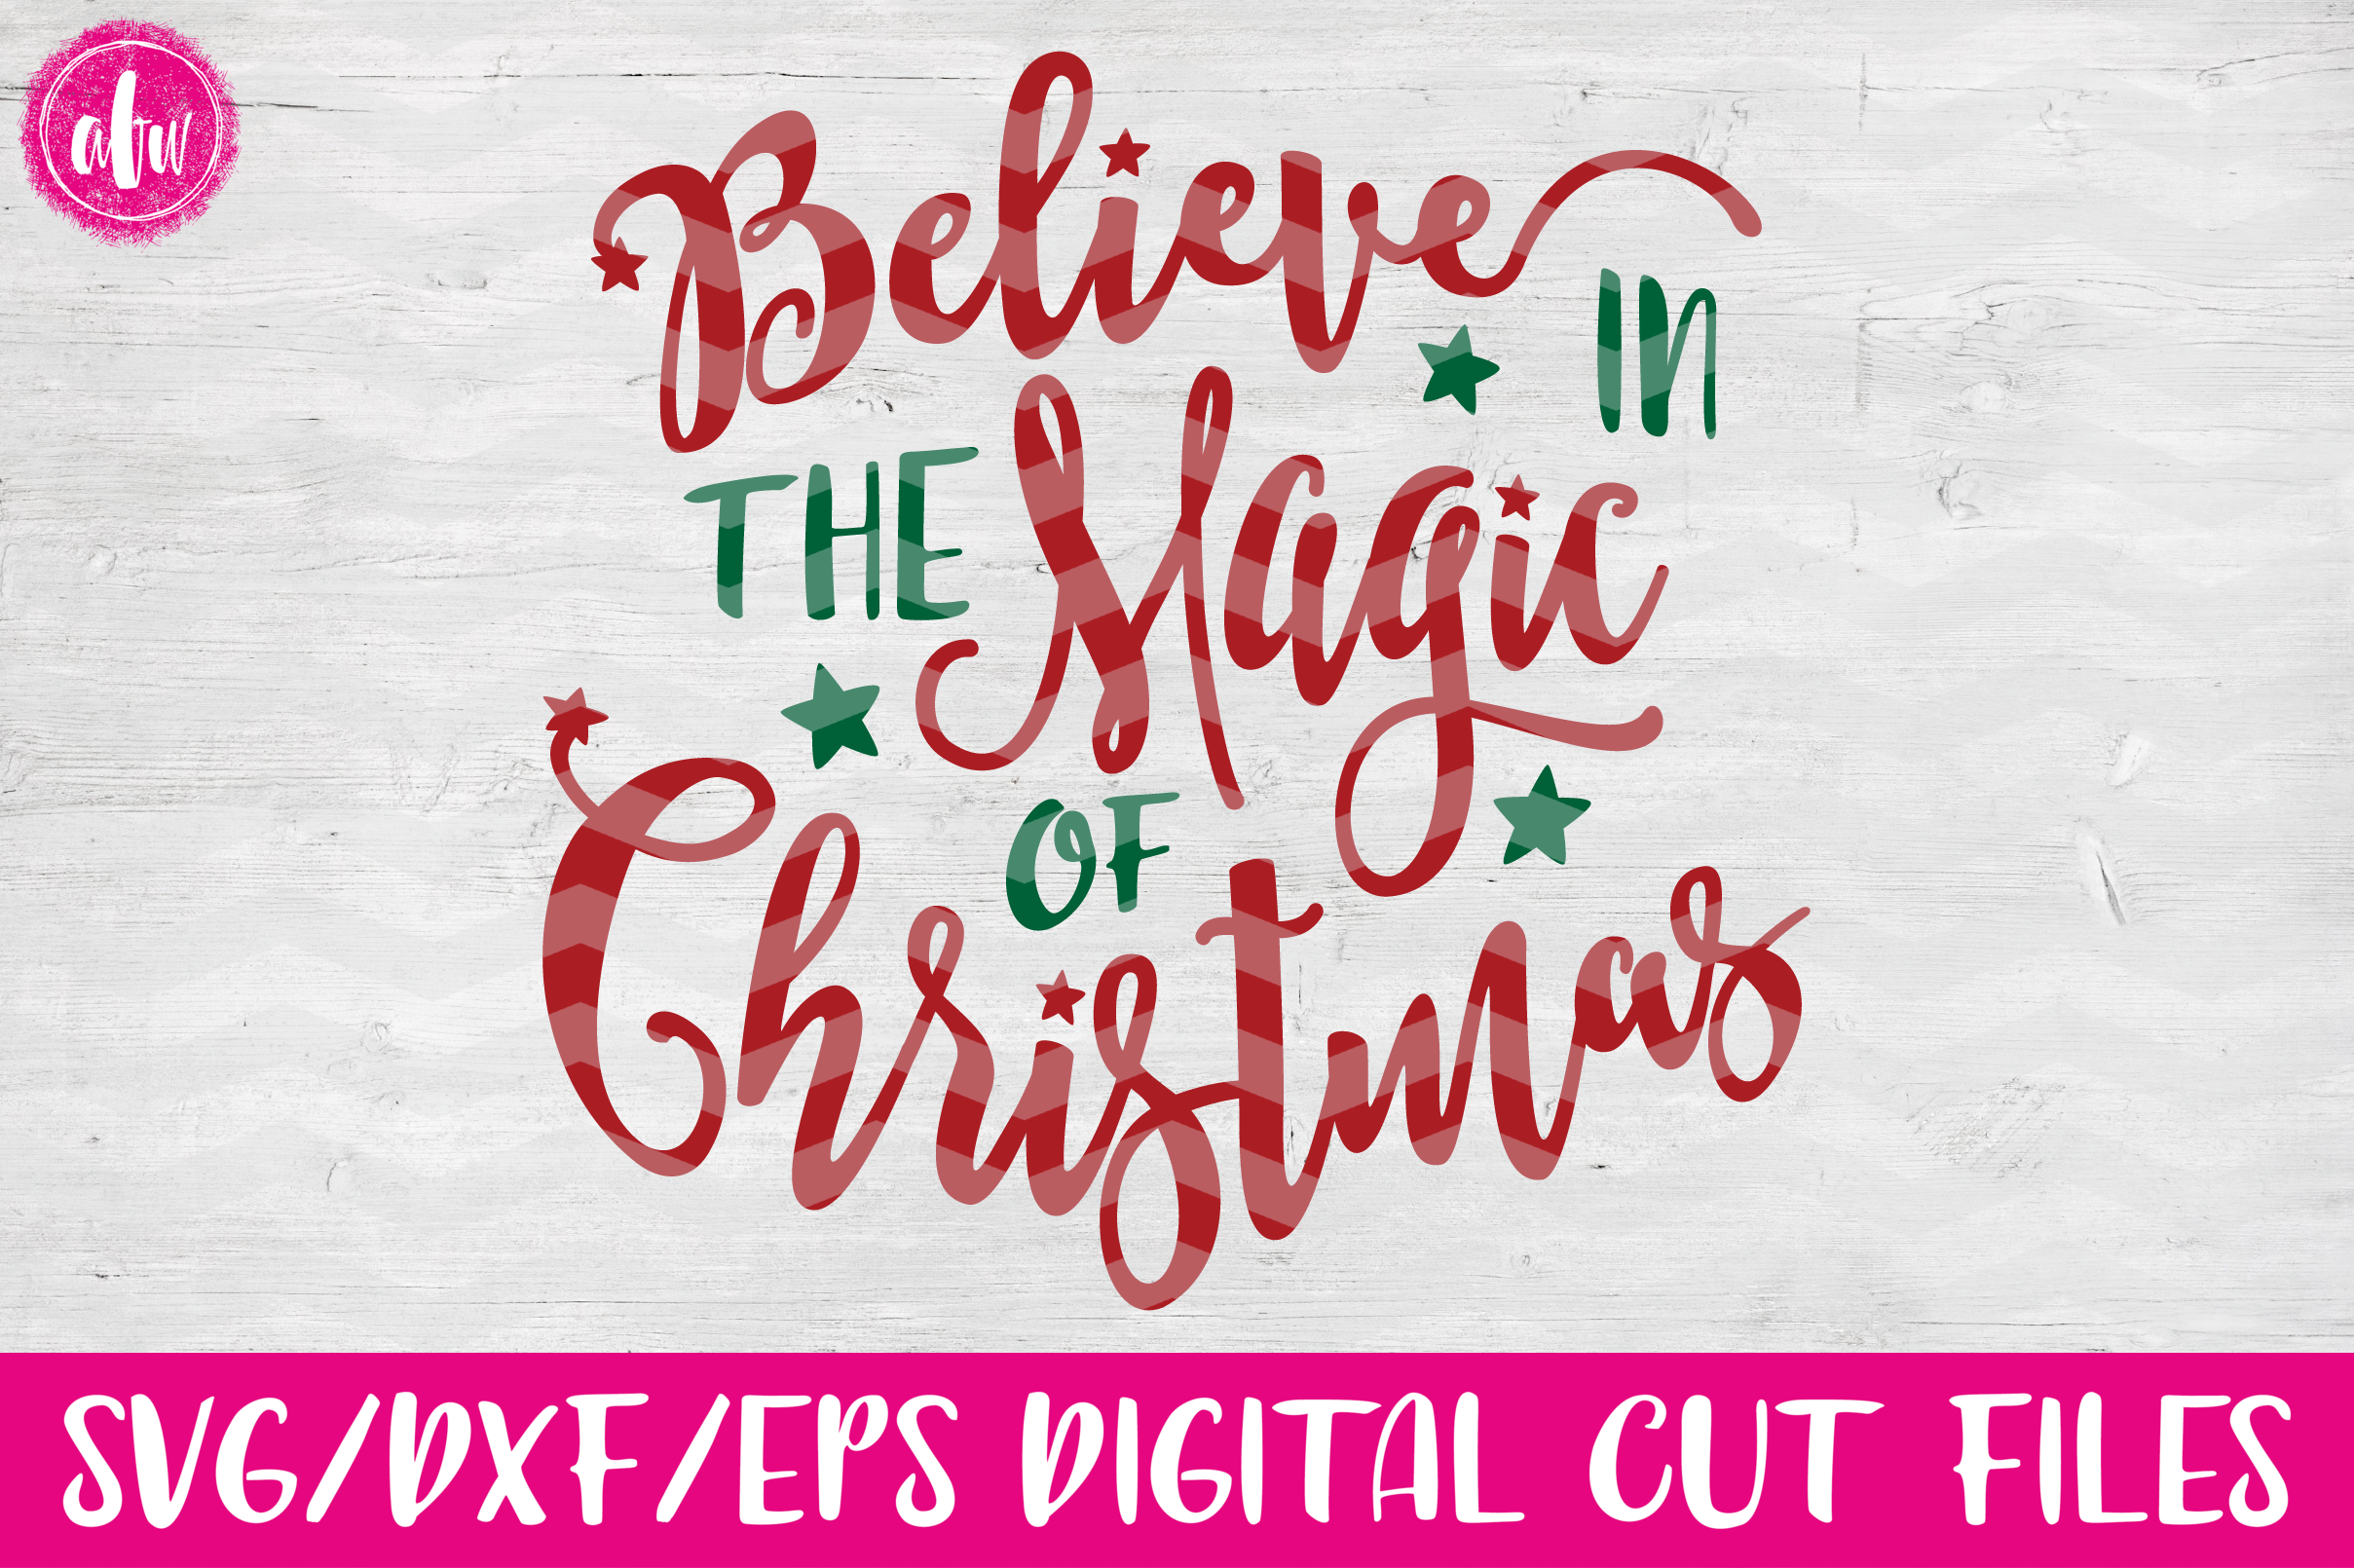 Believe in the Magic of Christmas - SVG, DXF, EPS Cut Files example image 1